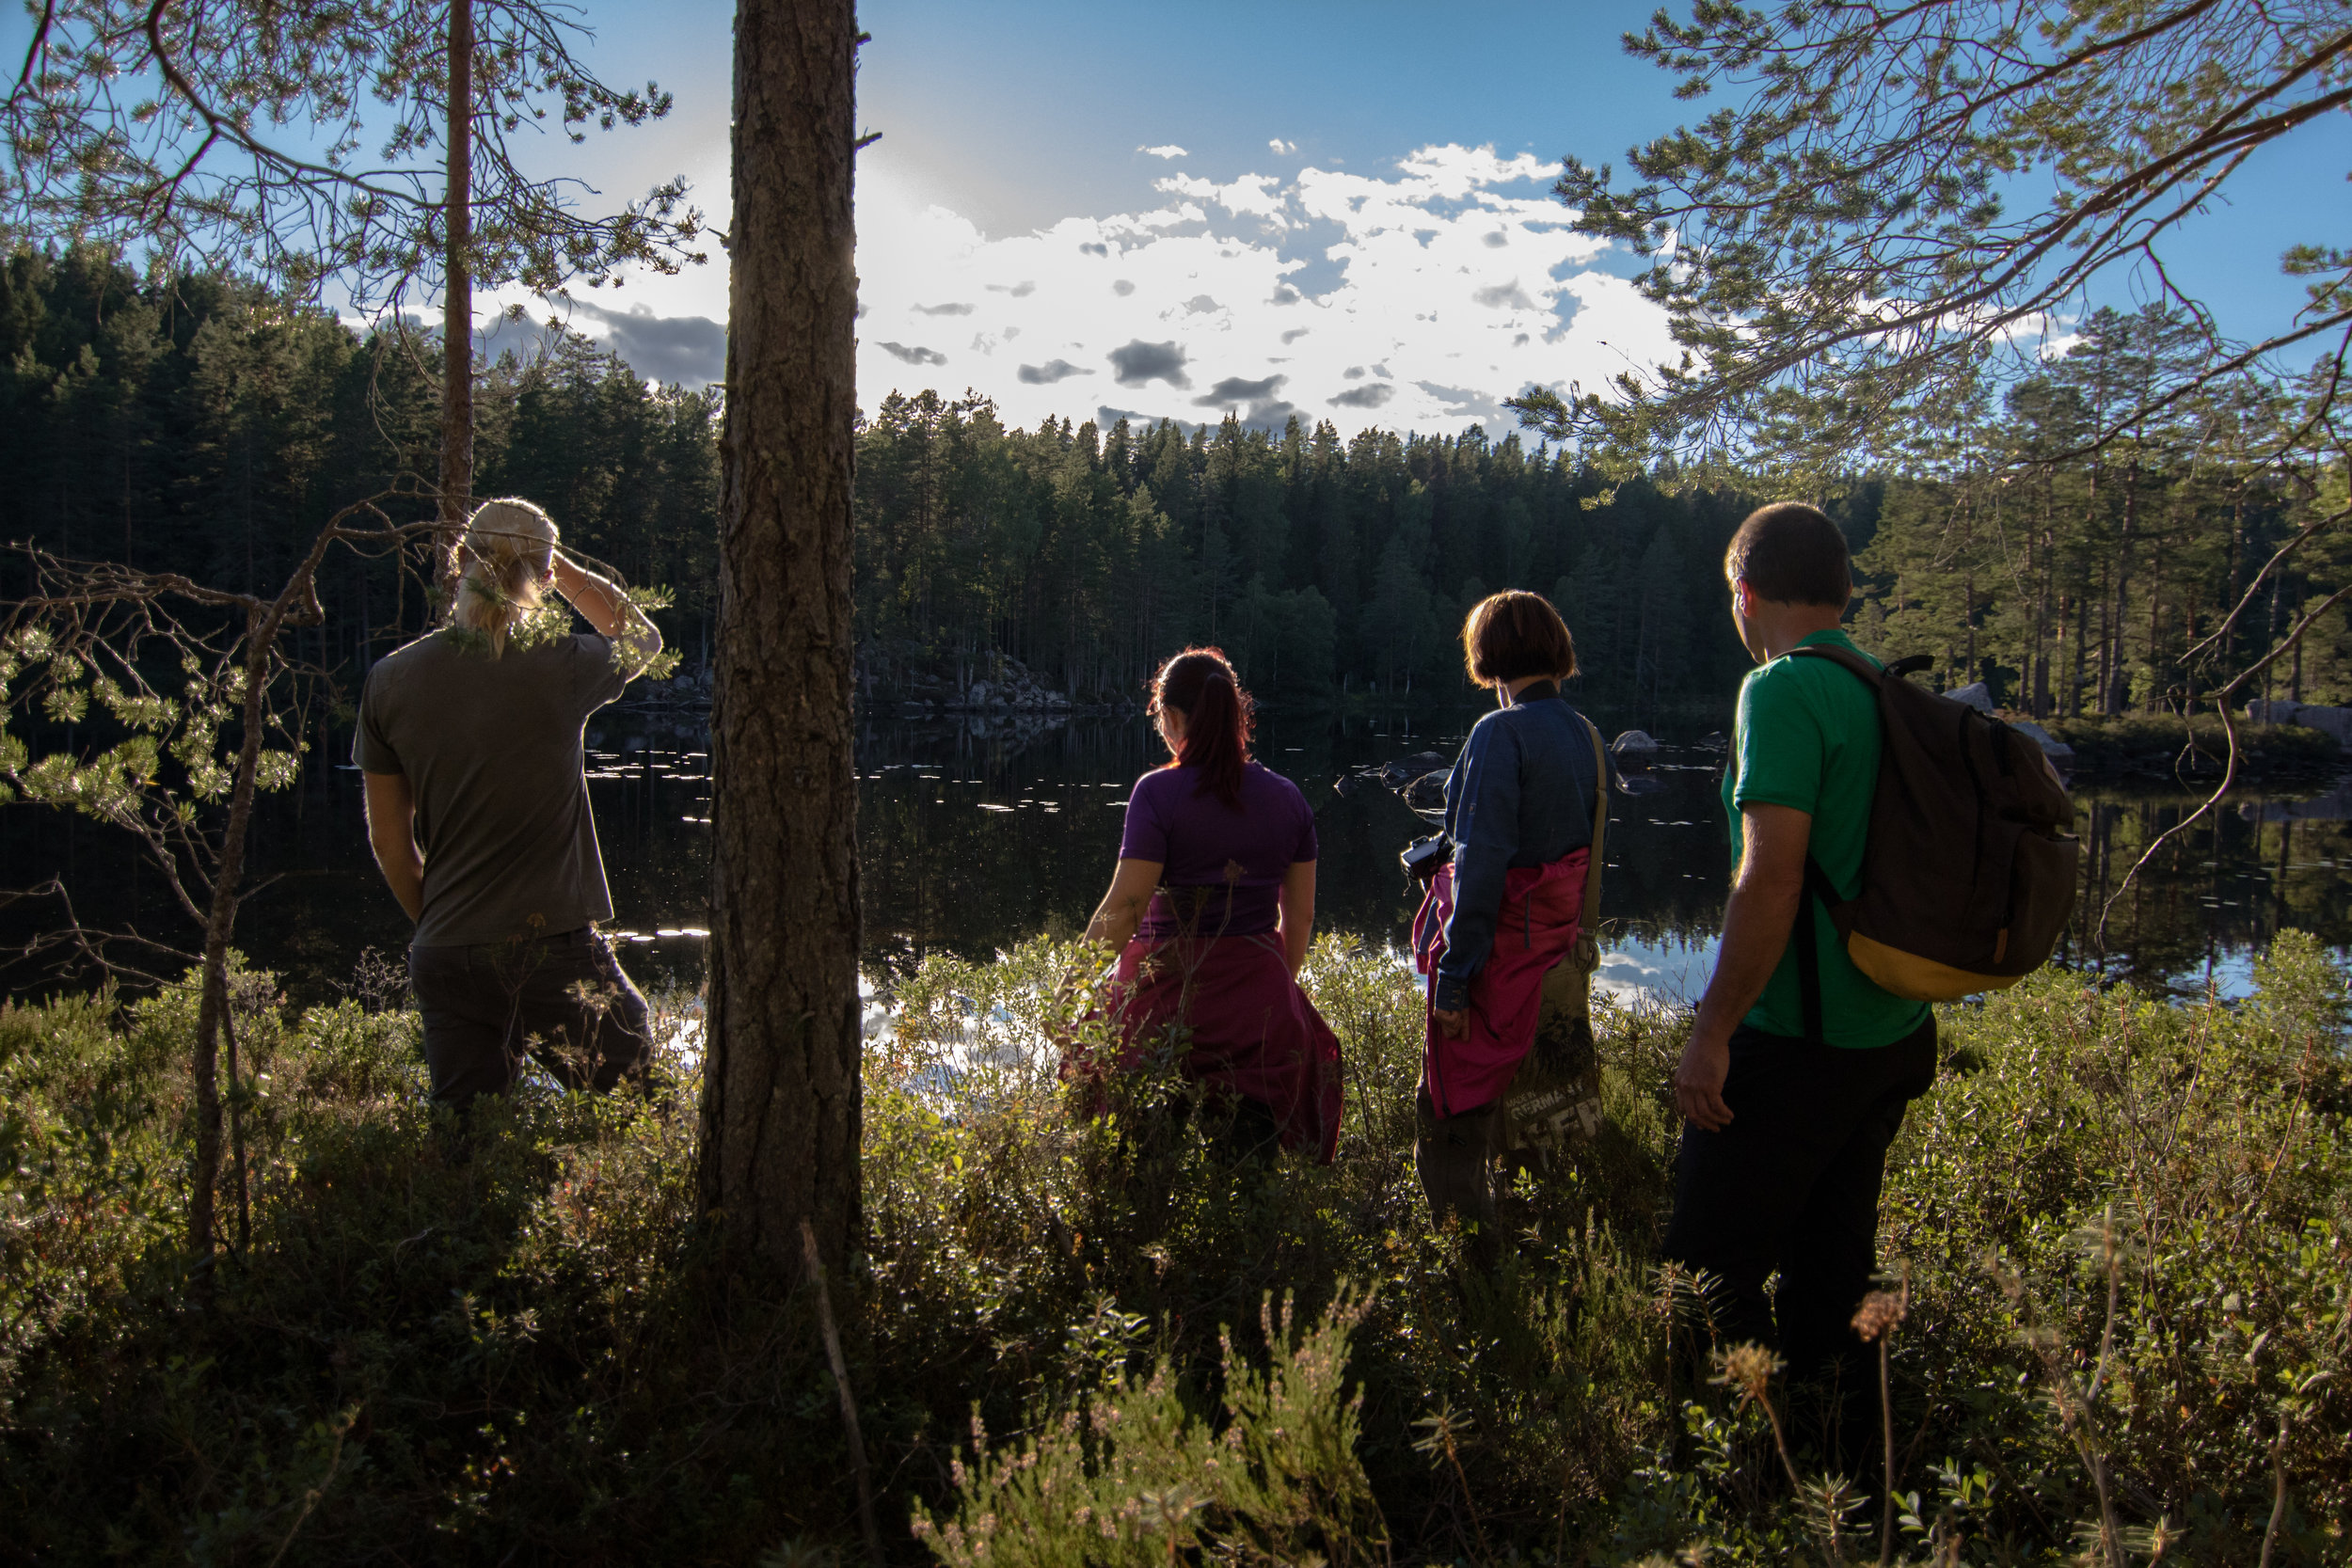 Guided hike in Moose forest. Photo: Simon Green